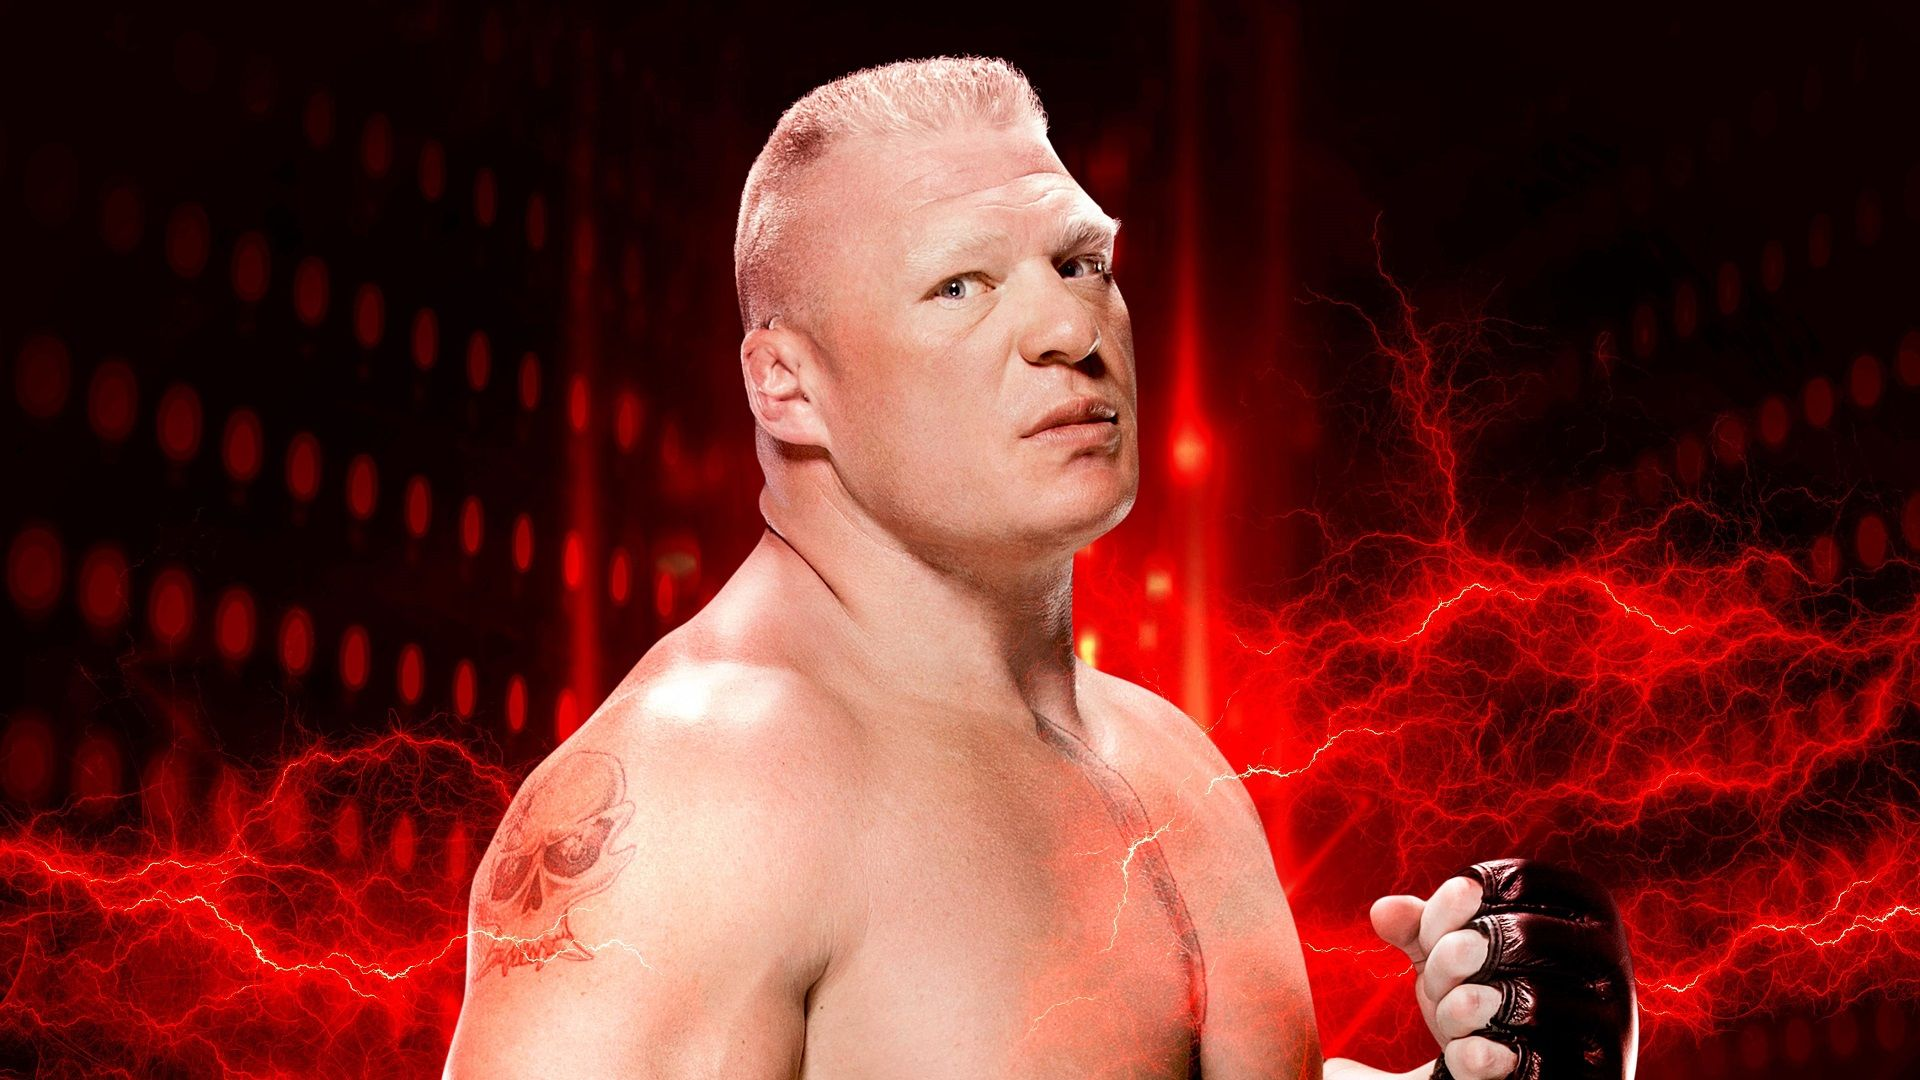 Wwe hd wallpaper 1080p for pc